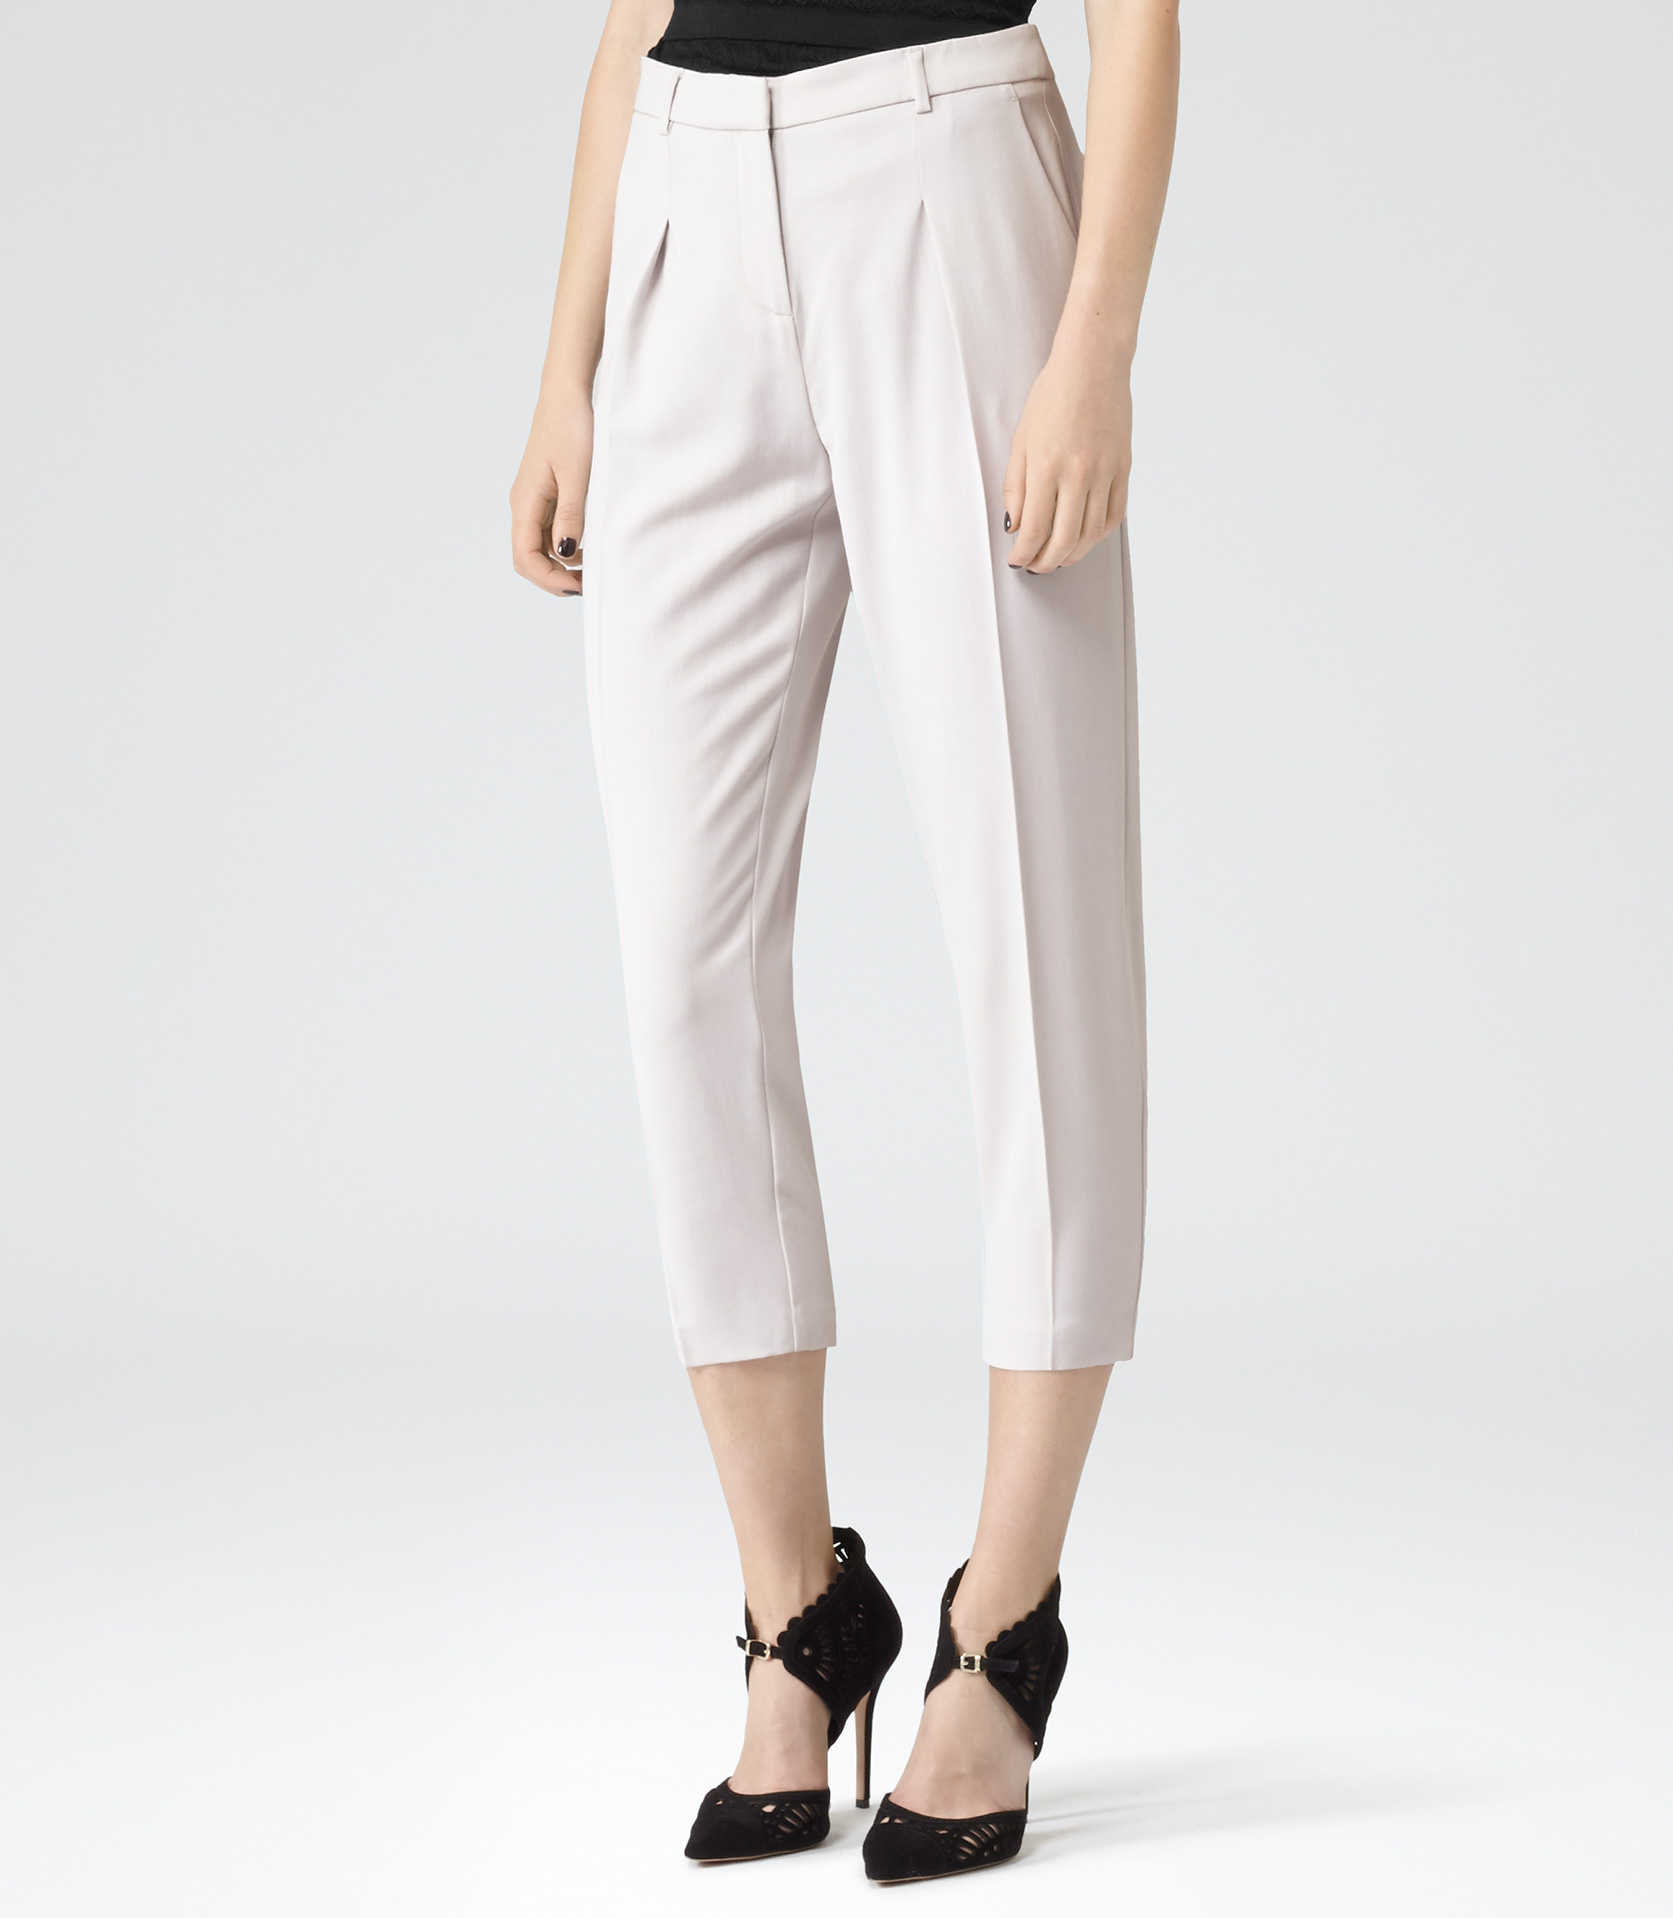 COMFORT AT ITS BEST; WOMEN'S TAPERED TROUSERS